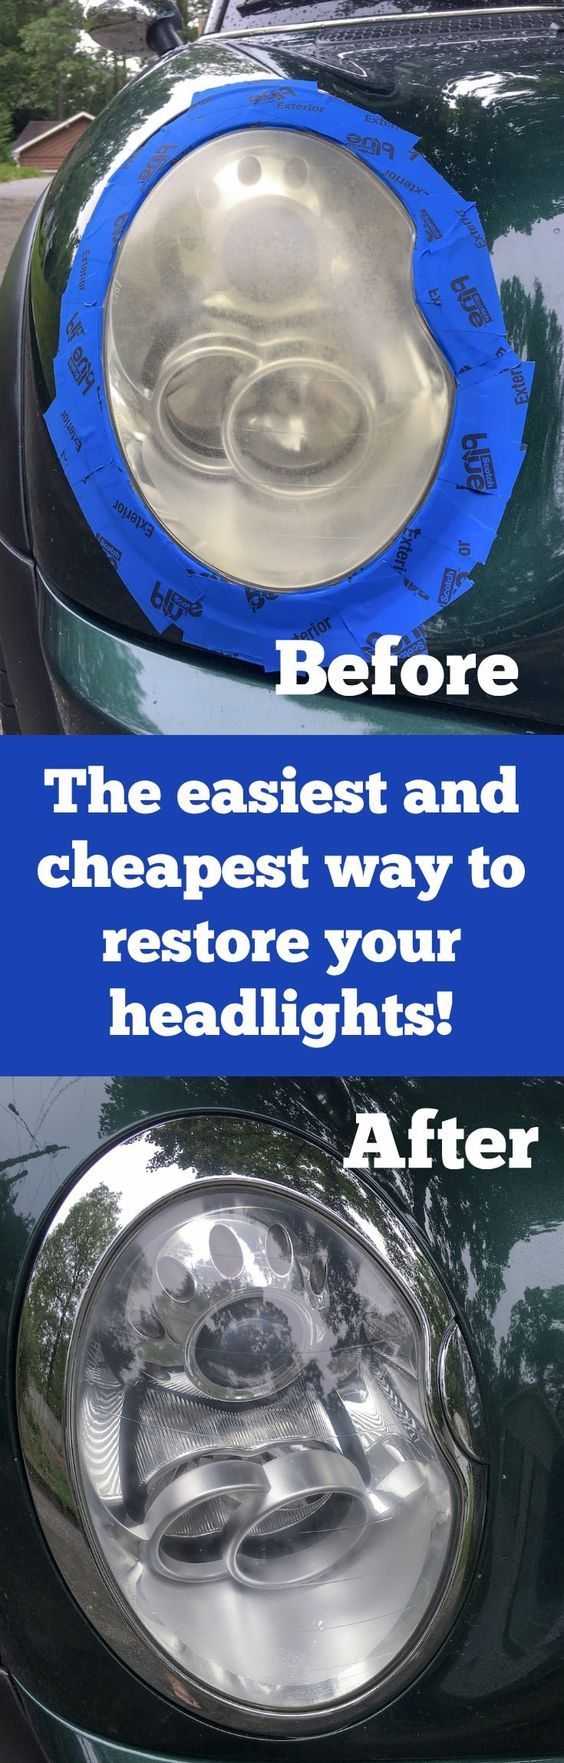 We found the best headlight restoration kit, and want to share our process with you. Restore your headlights inexpensively and in 30 minutes. via @diy_candy